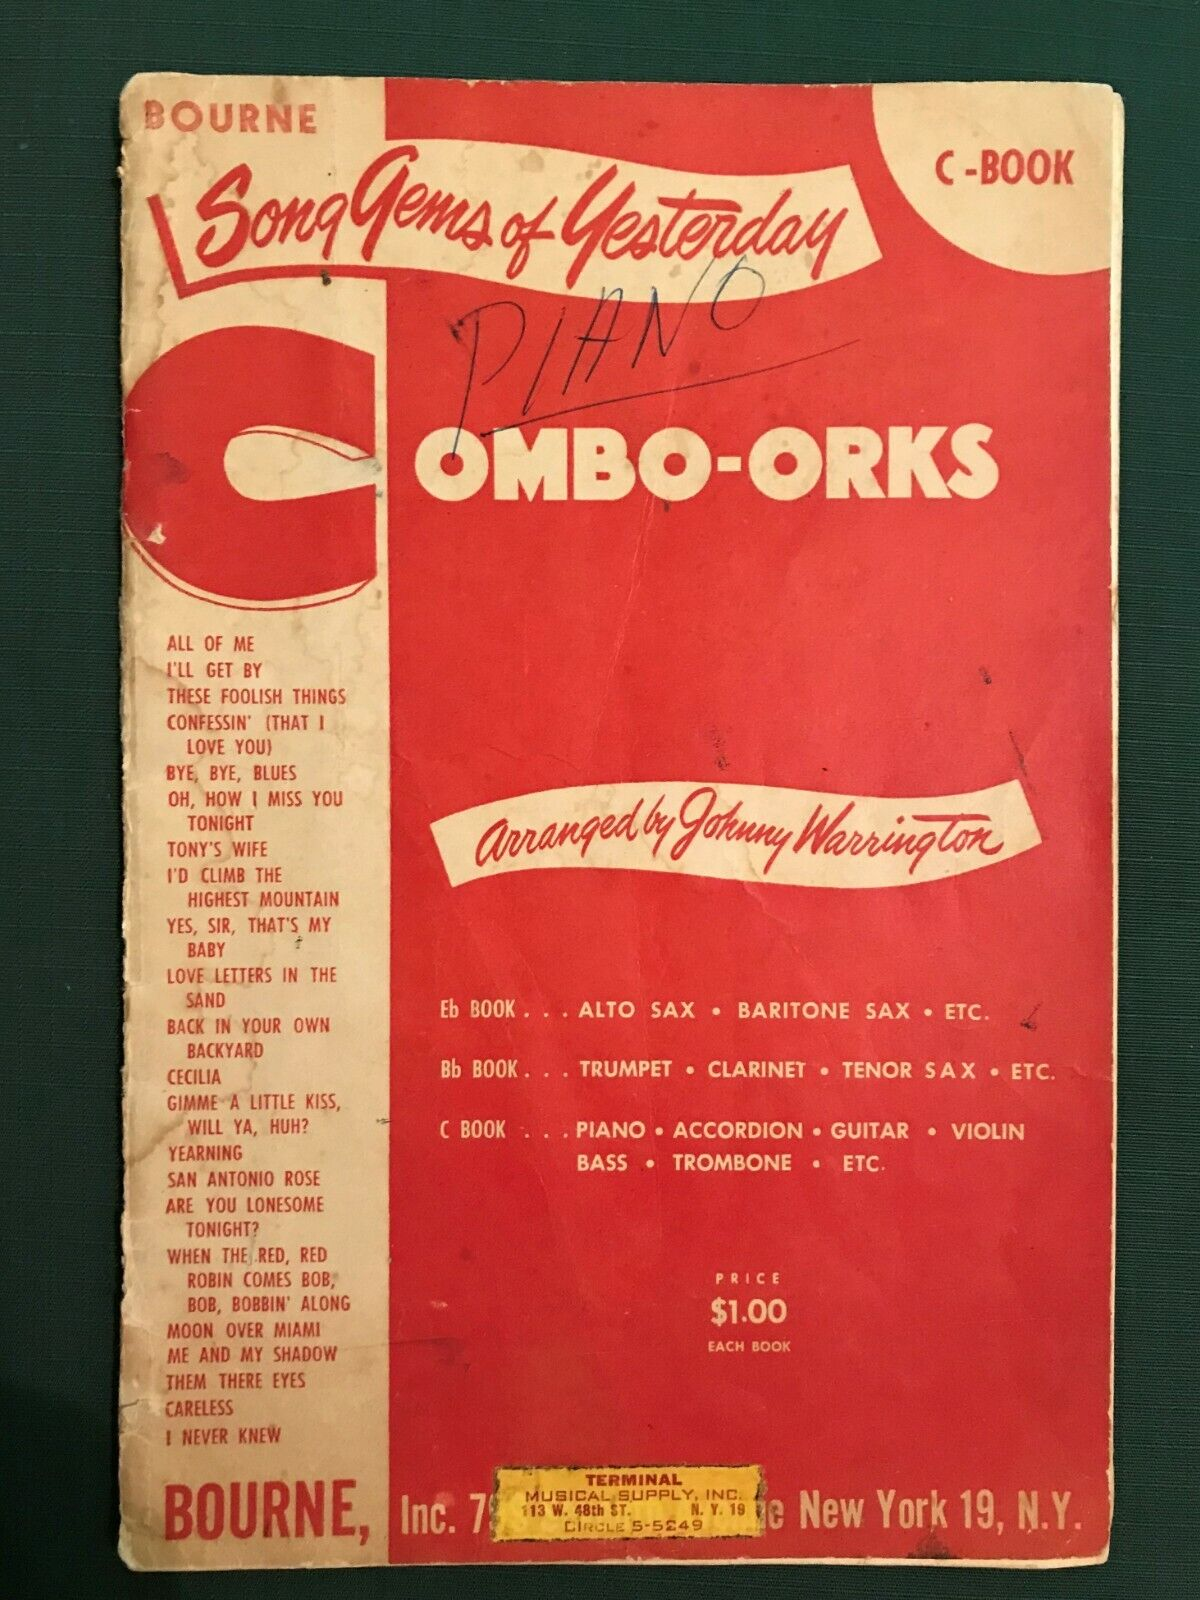 Vintage BOURNE Song Gems Of Yesterday C-Book Combo-Orks - $5.50